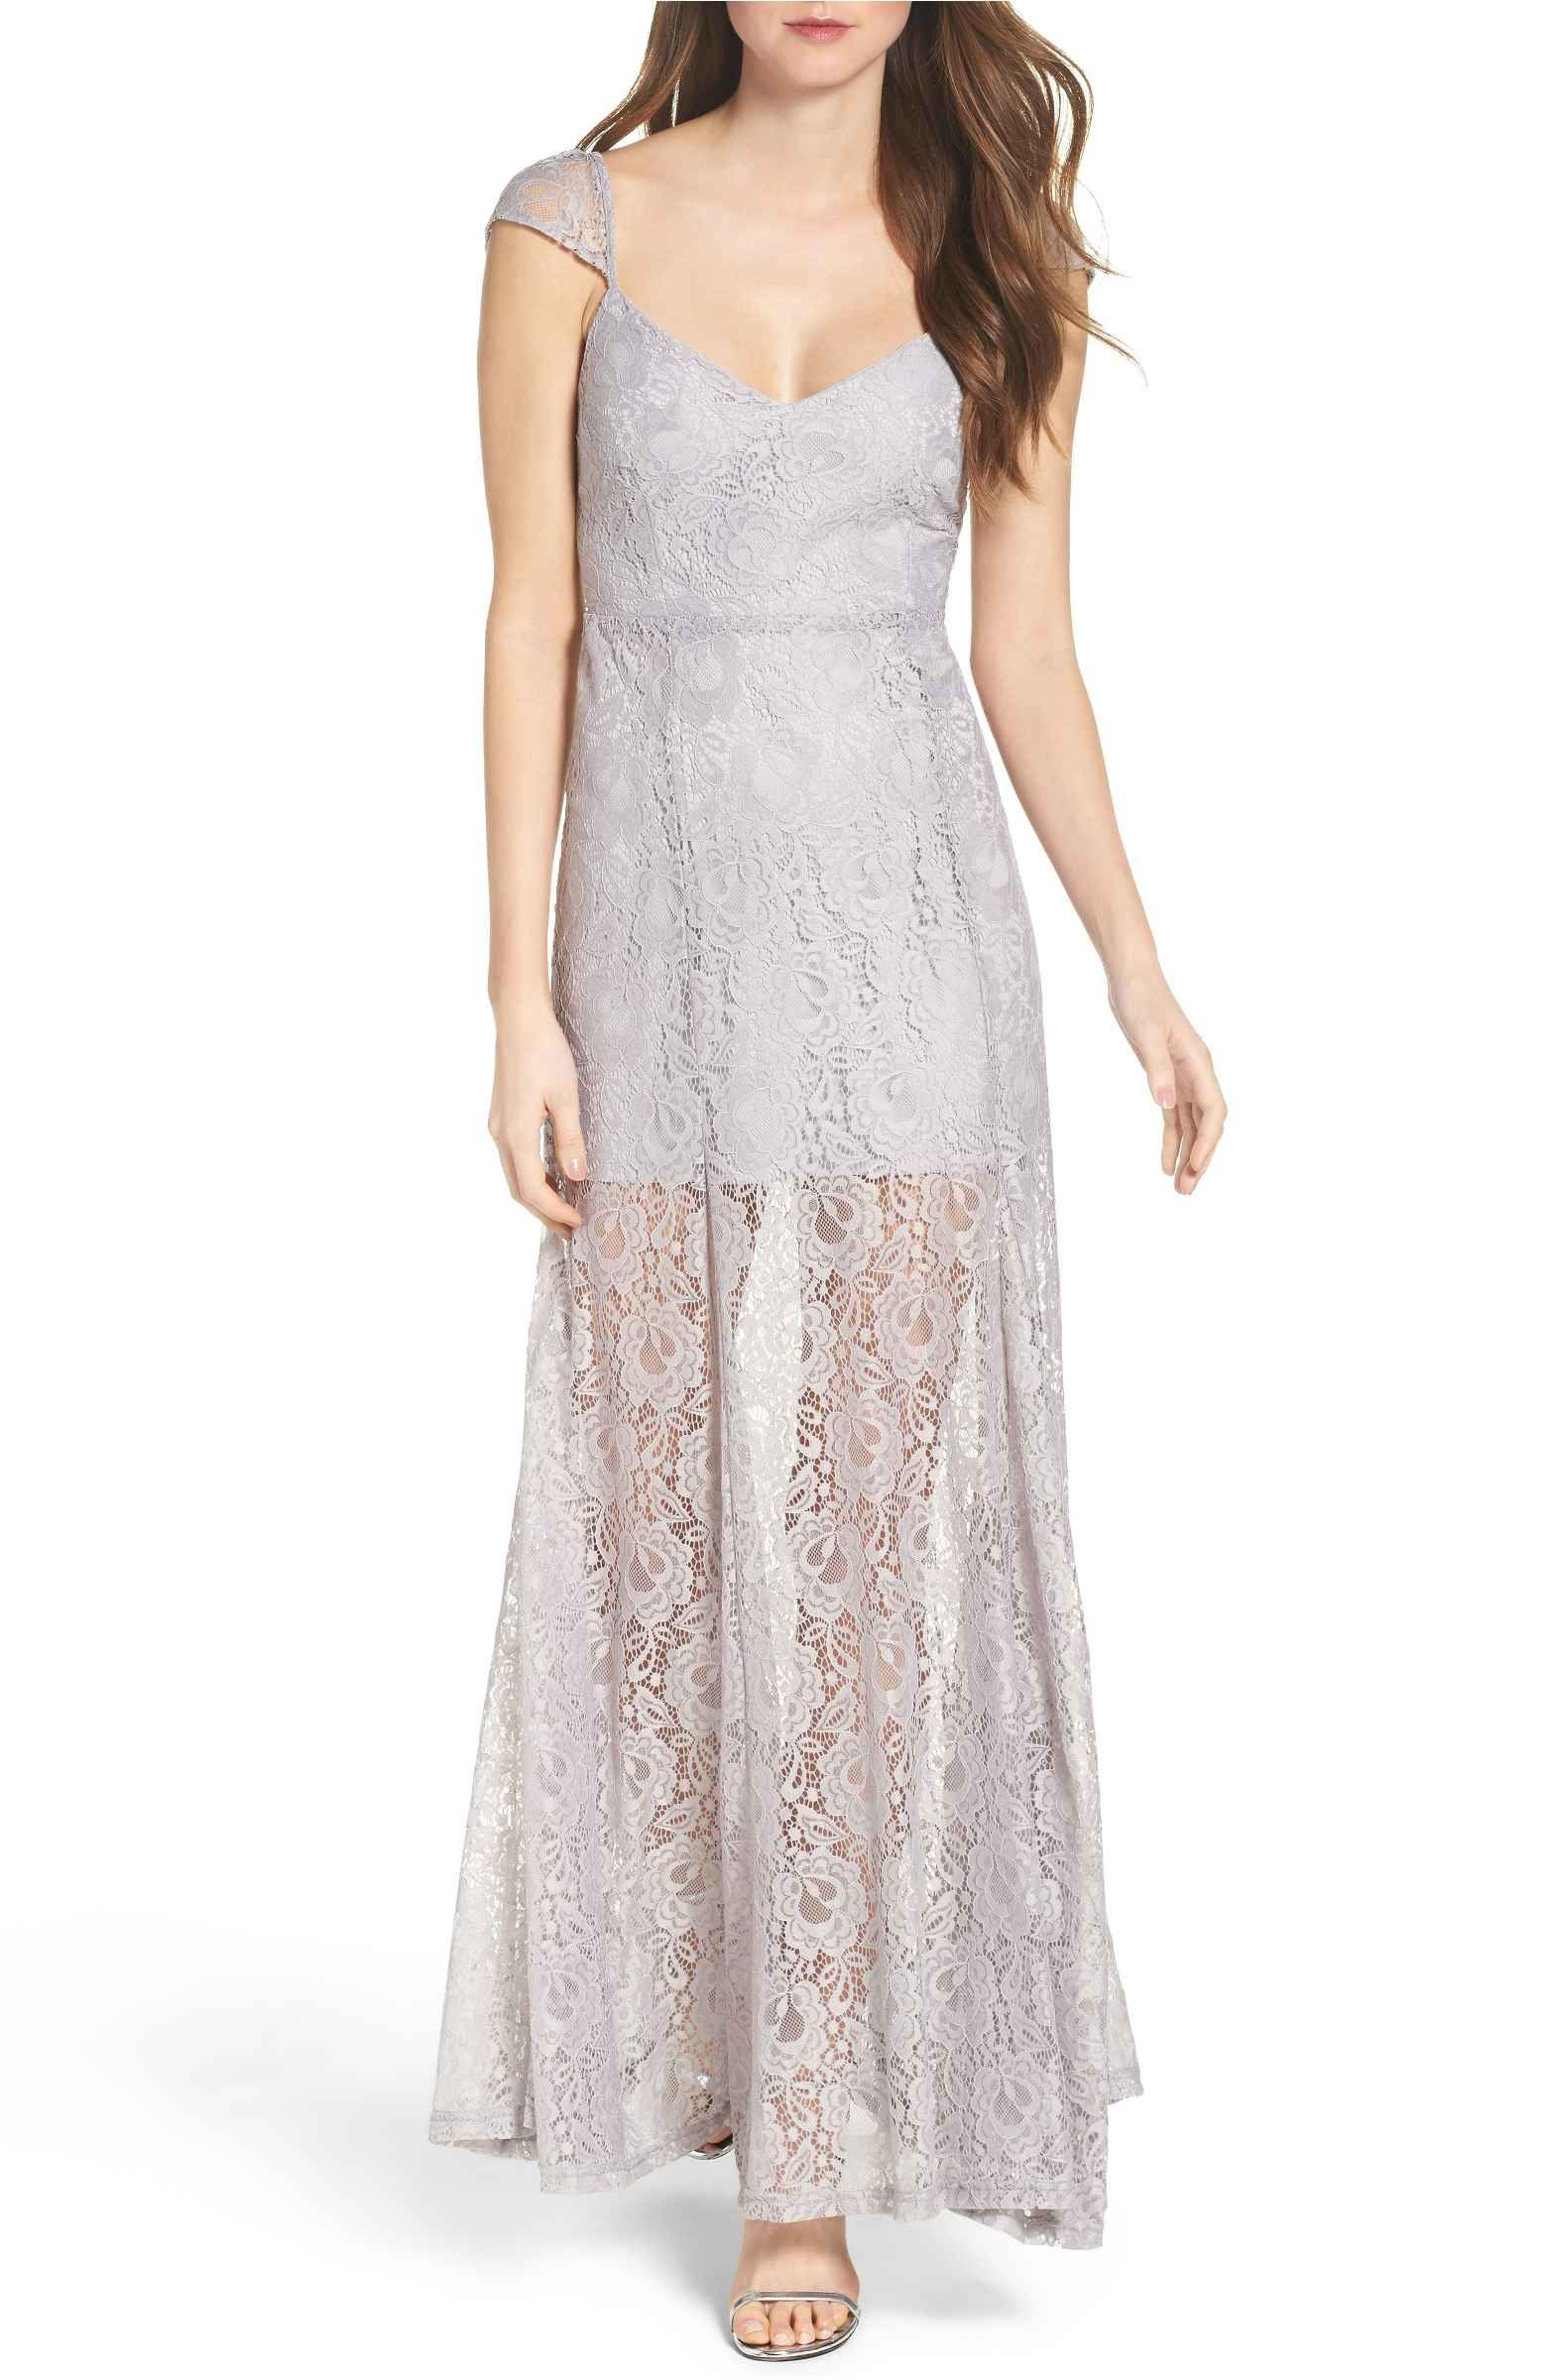 Main image lulus lace illusion skirt gown duds ium in love with